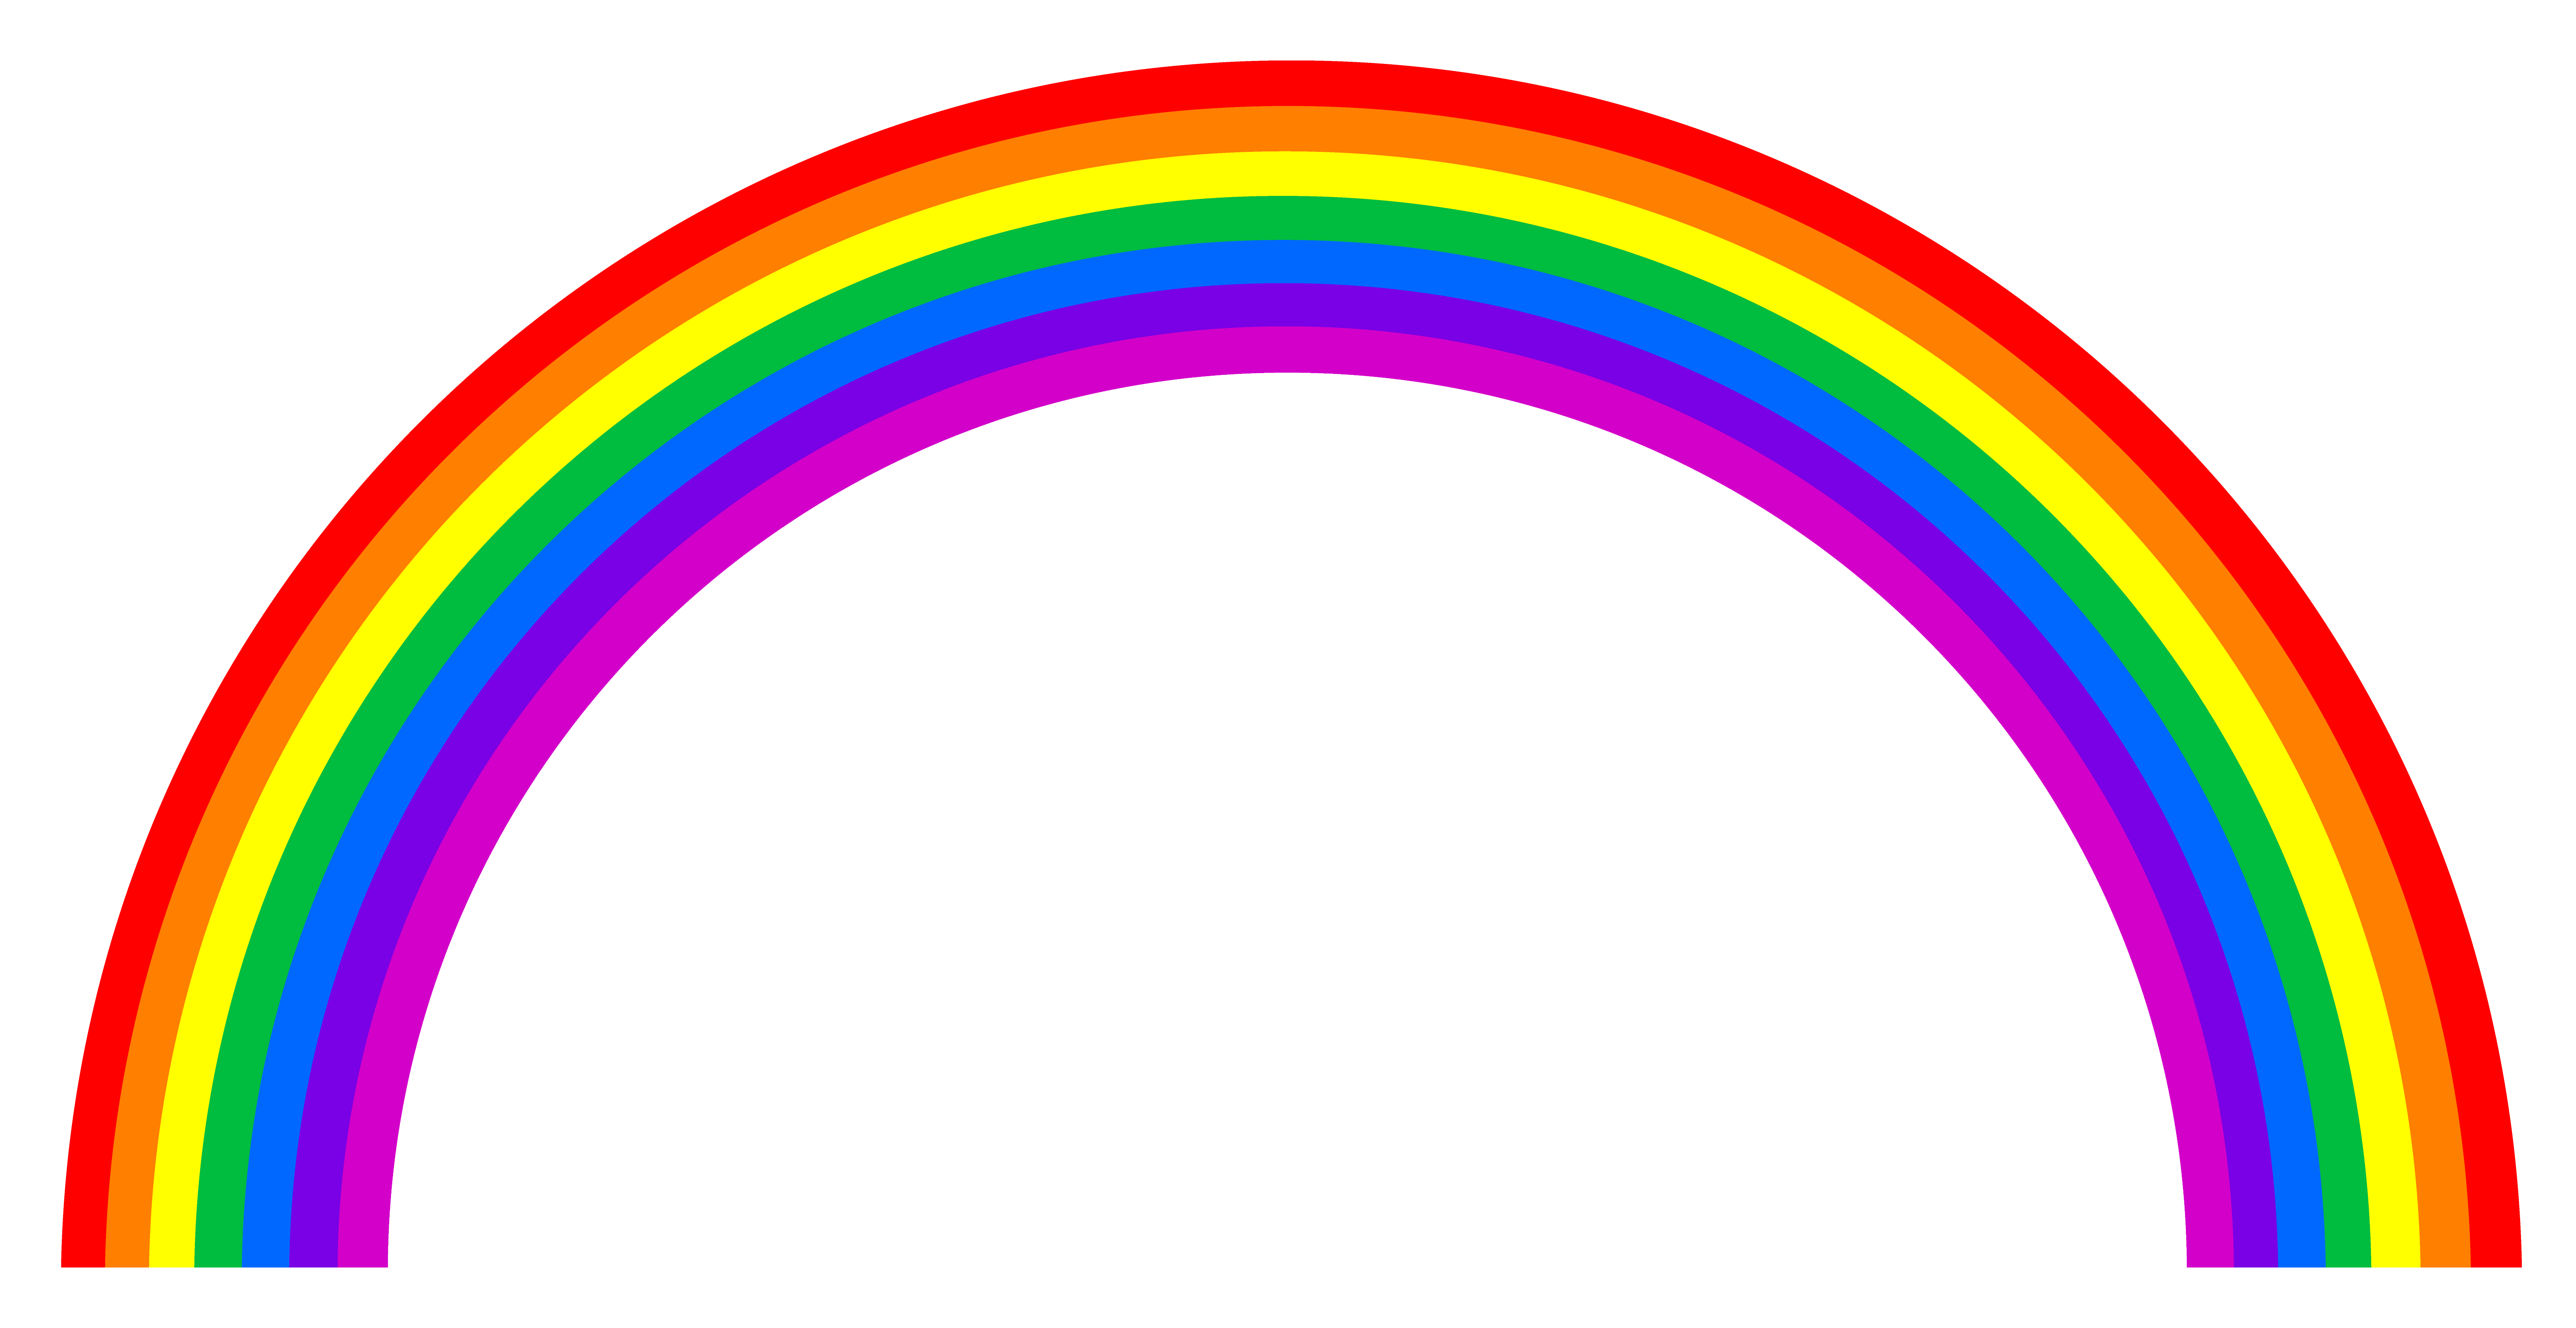 20 Vector Rainbow Style Images